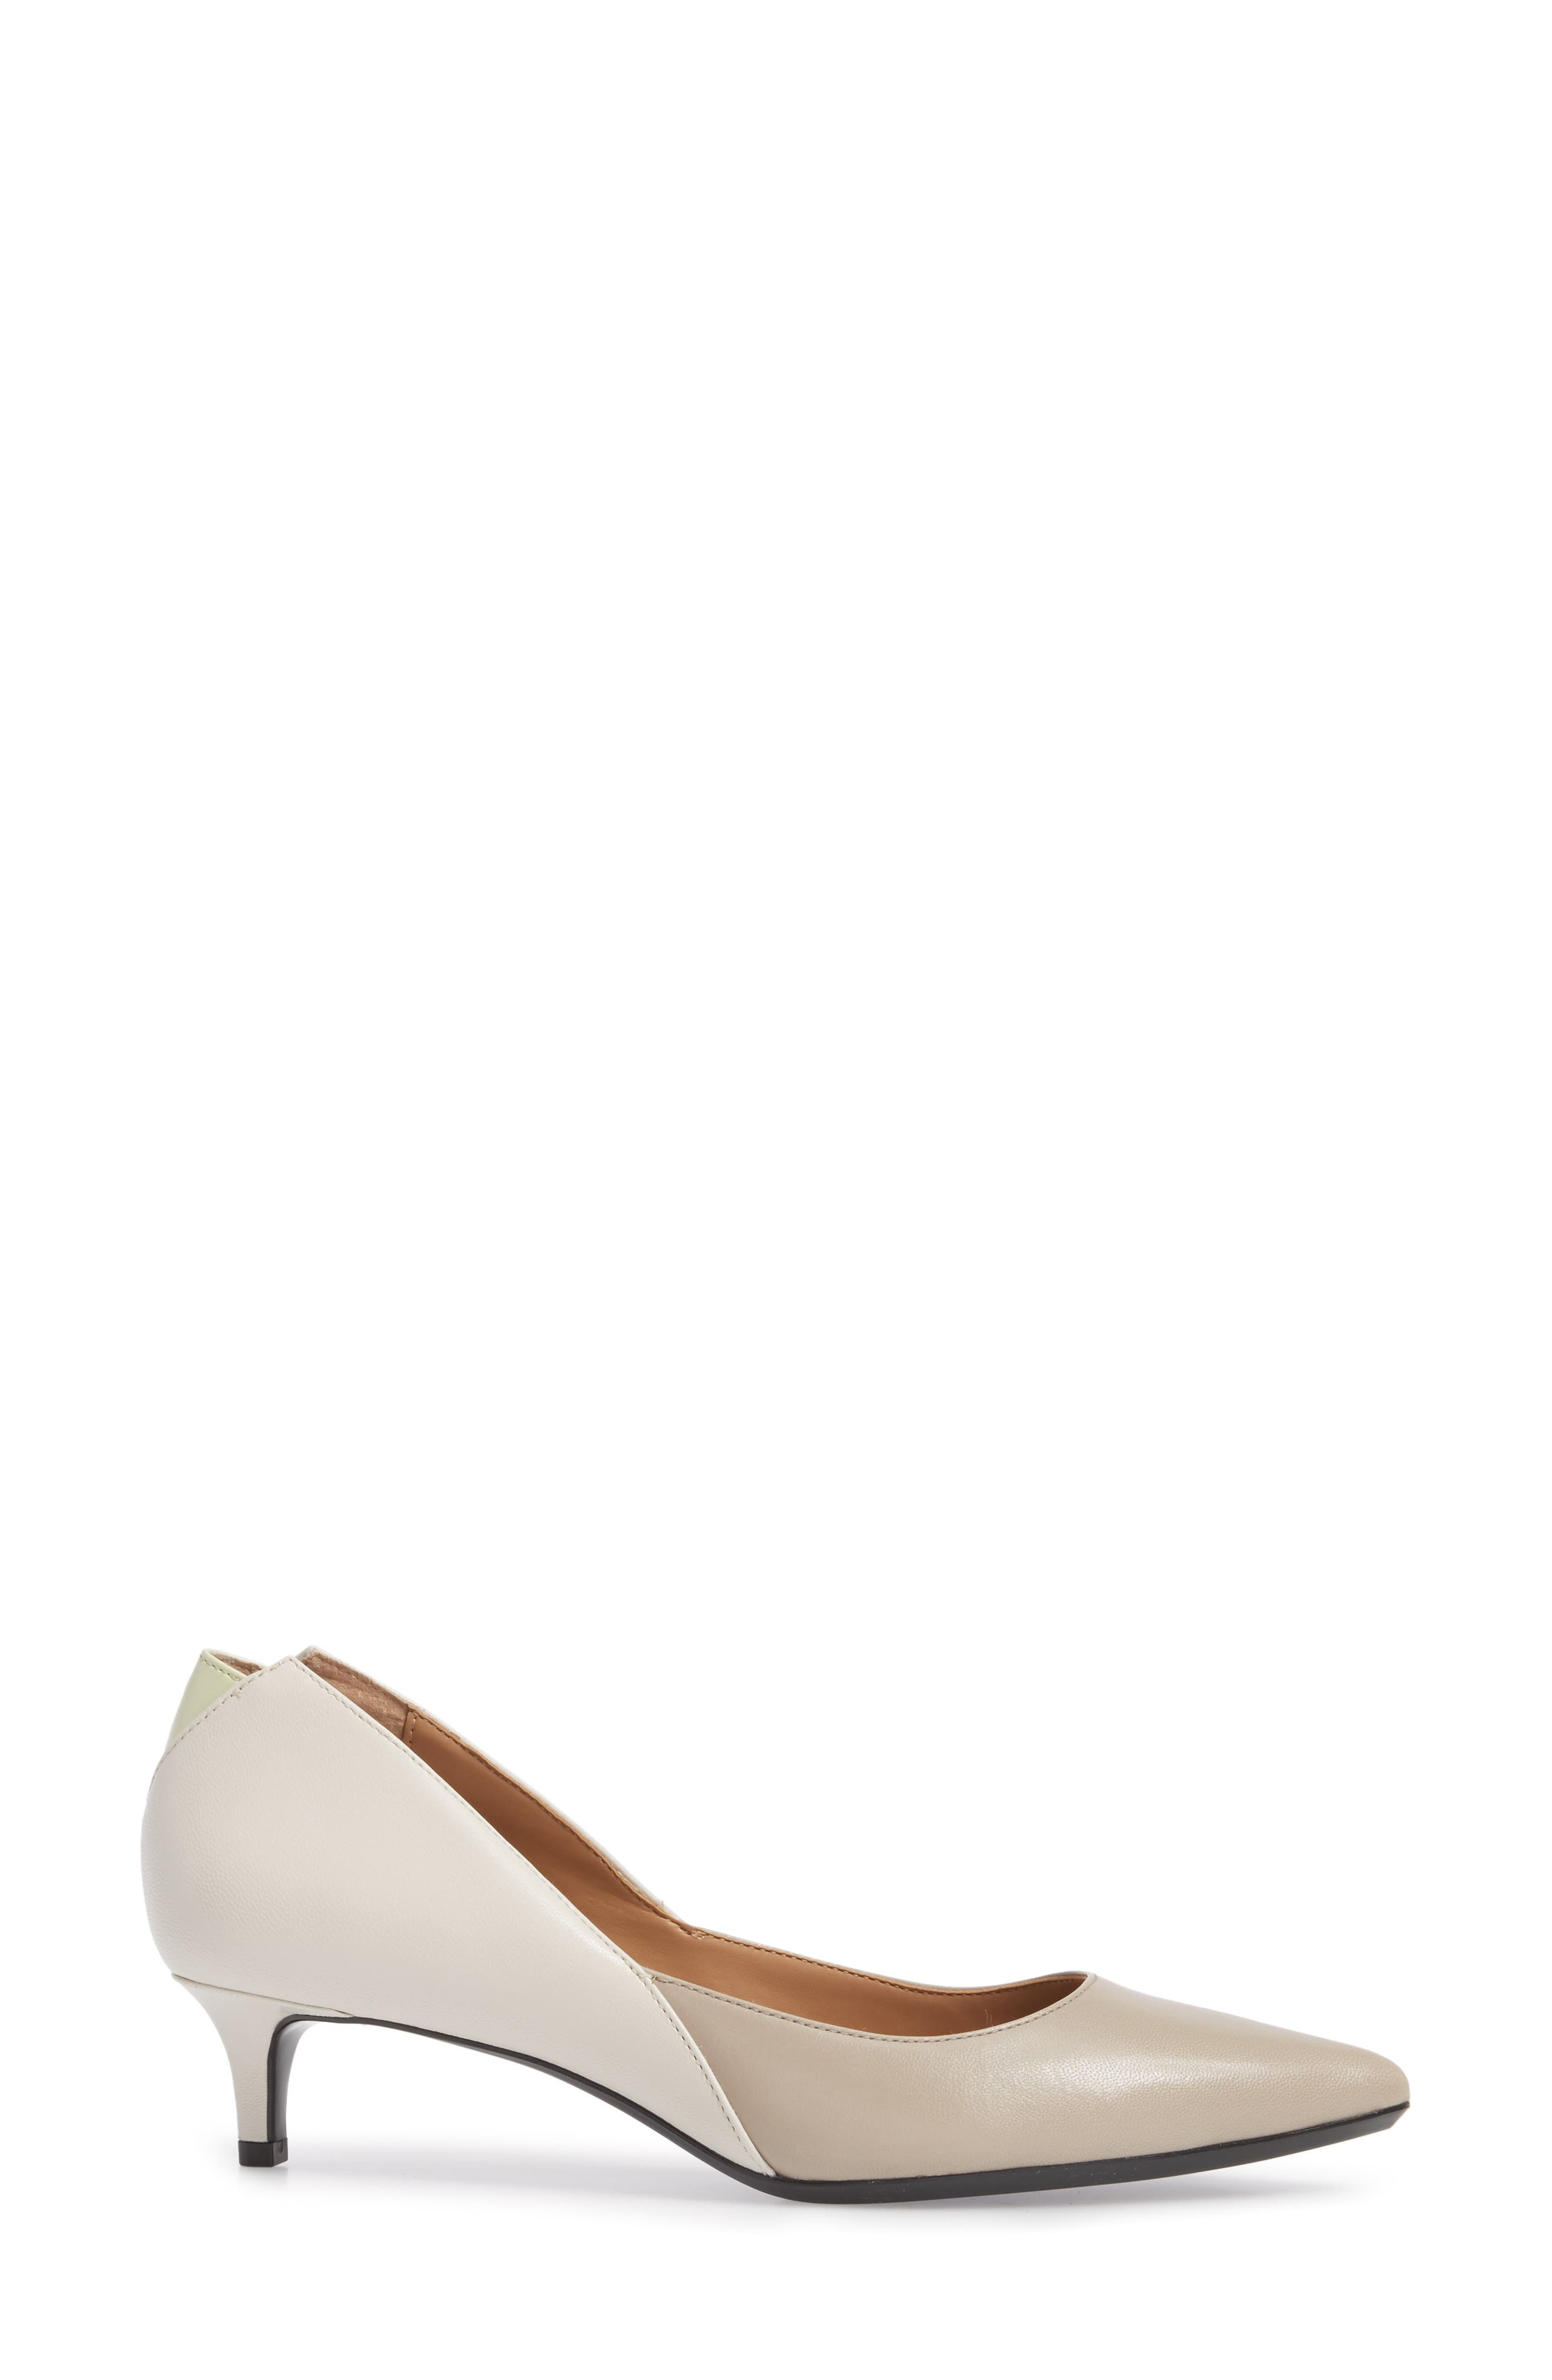 Grayce Pointy Toe Pump,                             Alternate thumbnail 3, color,                             Clay/ White Leather